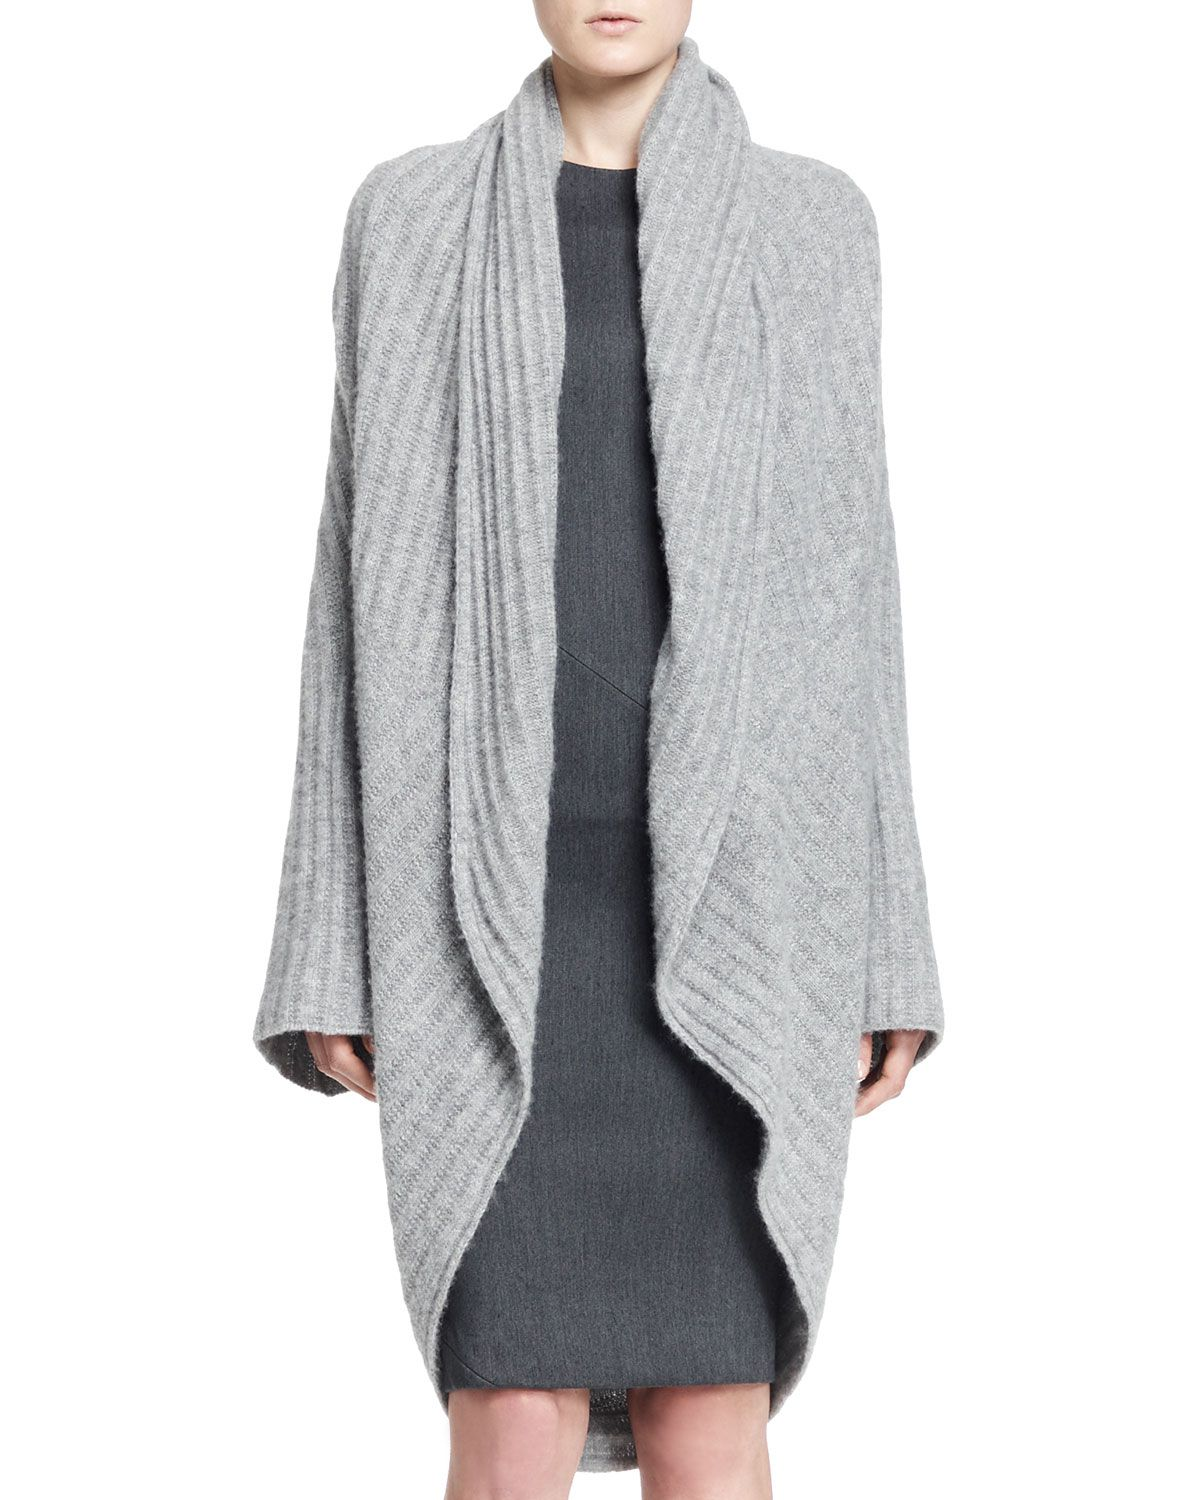 The Row Ilia Ribbed Cocoon Cardigan in Gray (LIGHT GREY MELANG ...